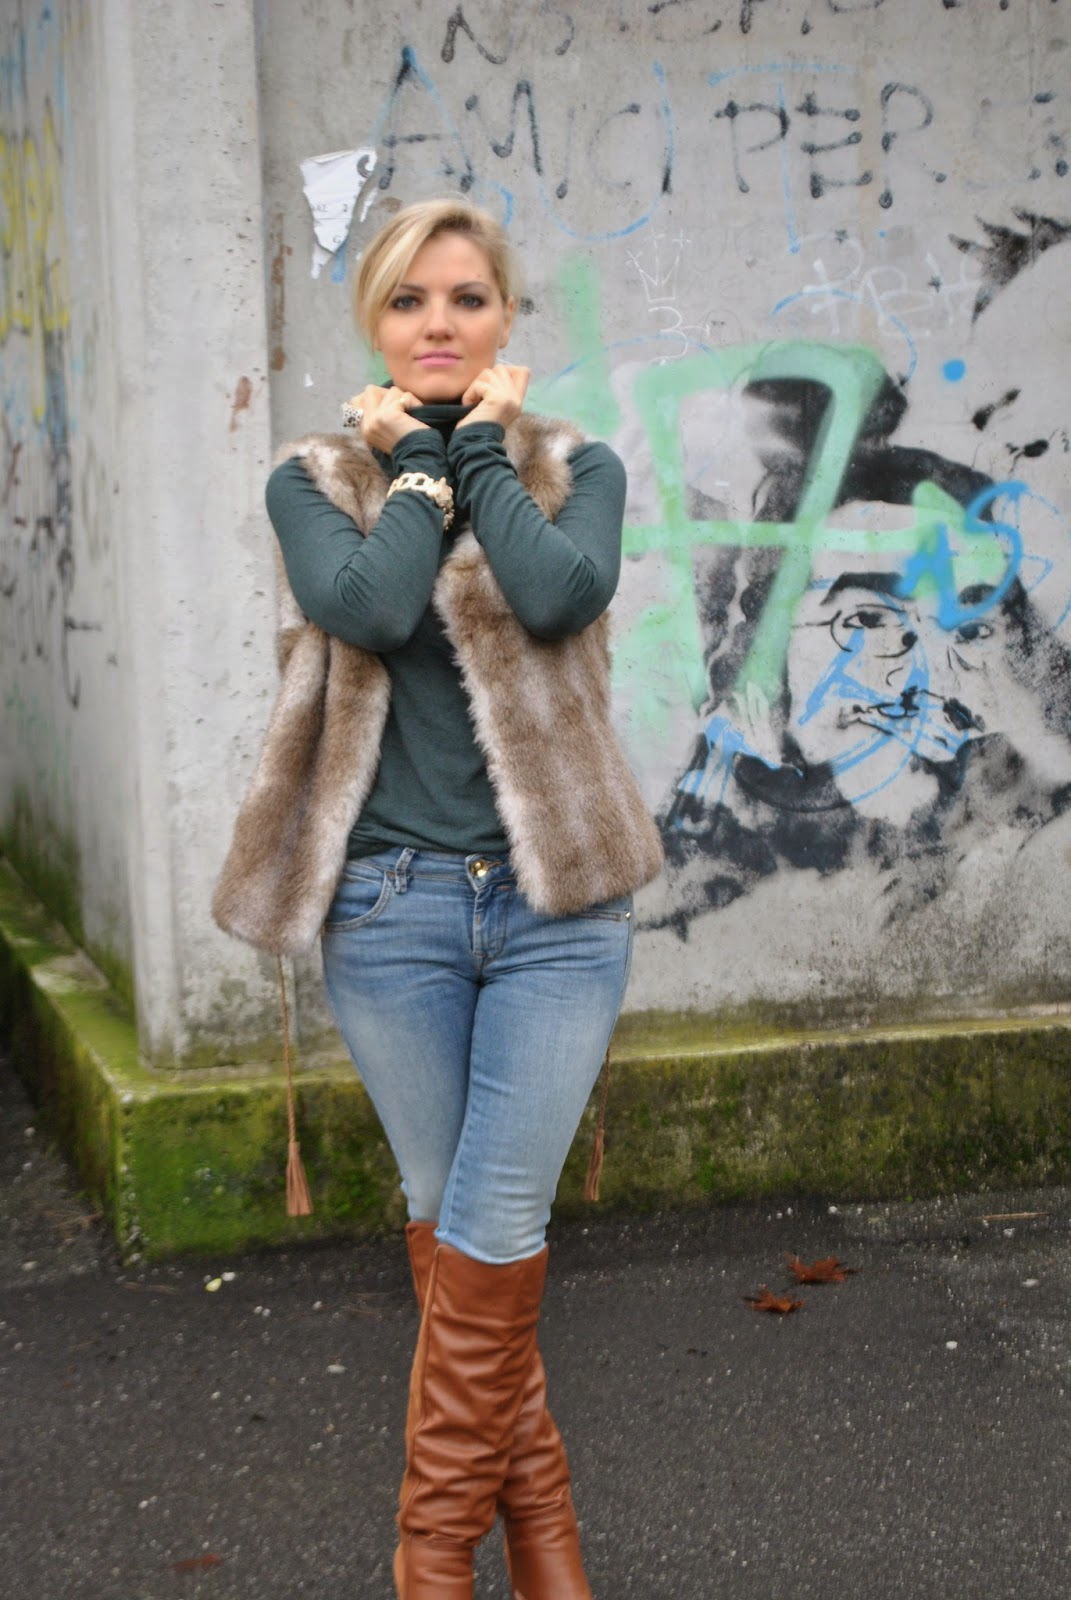 outfit jeans e tacchi outfit jeans  e maglione a collo alto outfit gilet di pelliccia abbinamenti jeans e tacchi abbinamenti stivali al ginocchio how to wear jeans and heels how to wear fur vest majique london bracelet bracciale majique london fashion blogger italiane fashion blogger bionde mariafelicia magno color block by felym outfit invernali outfit dicembre 2014 outfit eleganti invernali december outfits winter outfits